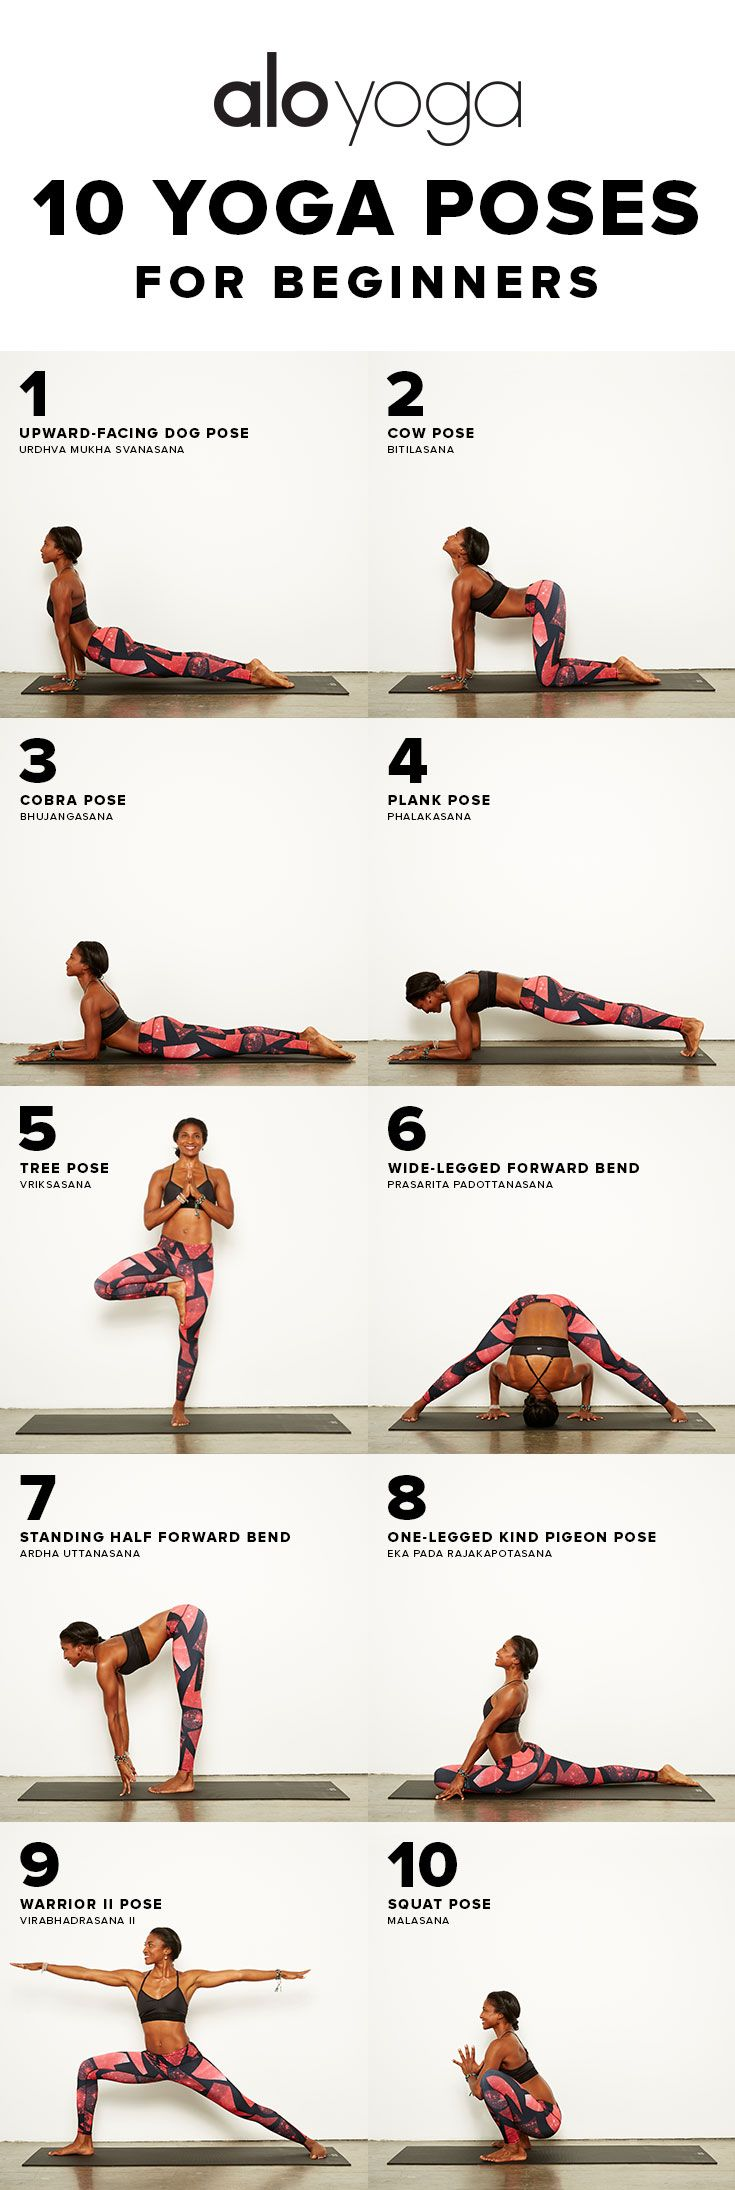 10 Yoga Poses For Beginners Yogasequence Sequence Inspiration Aloyoga